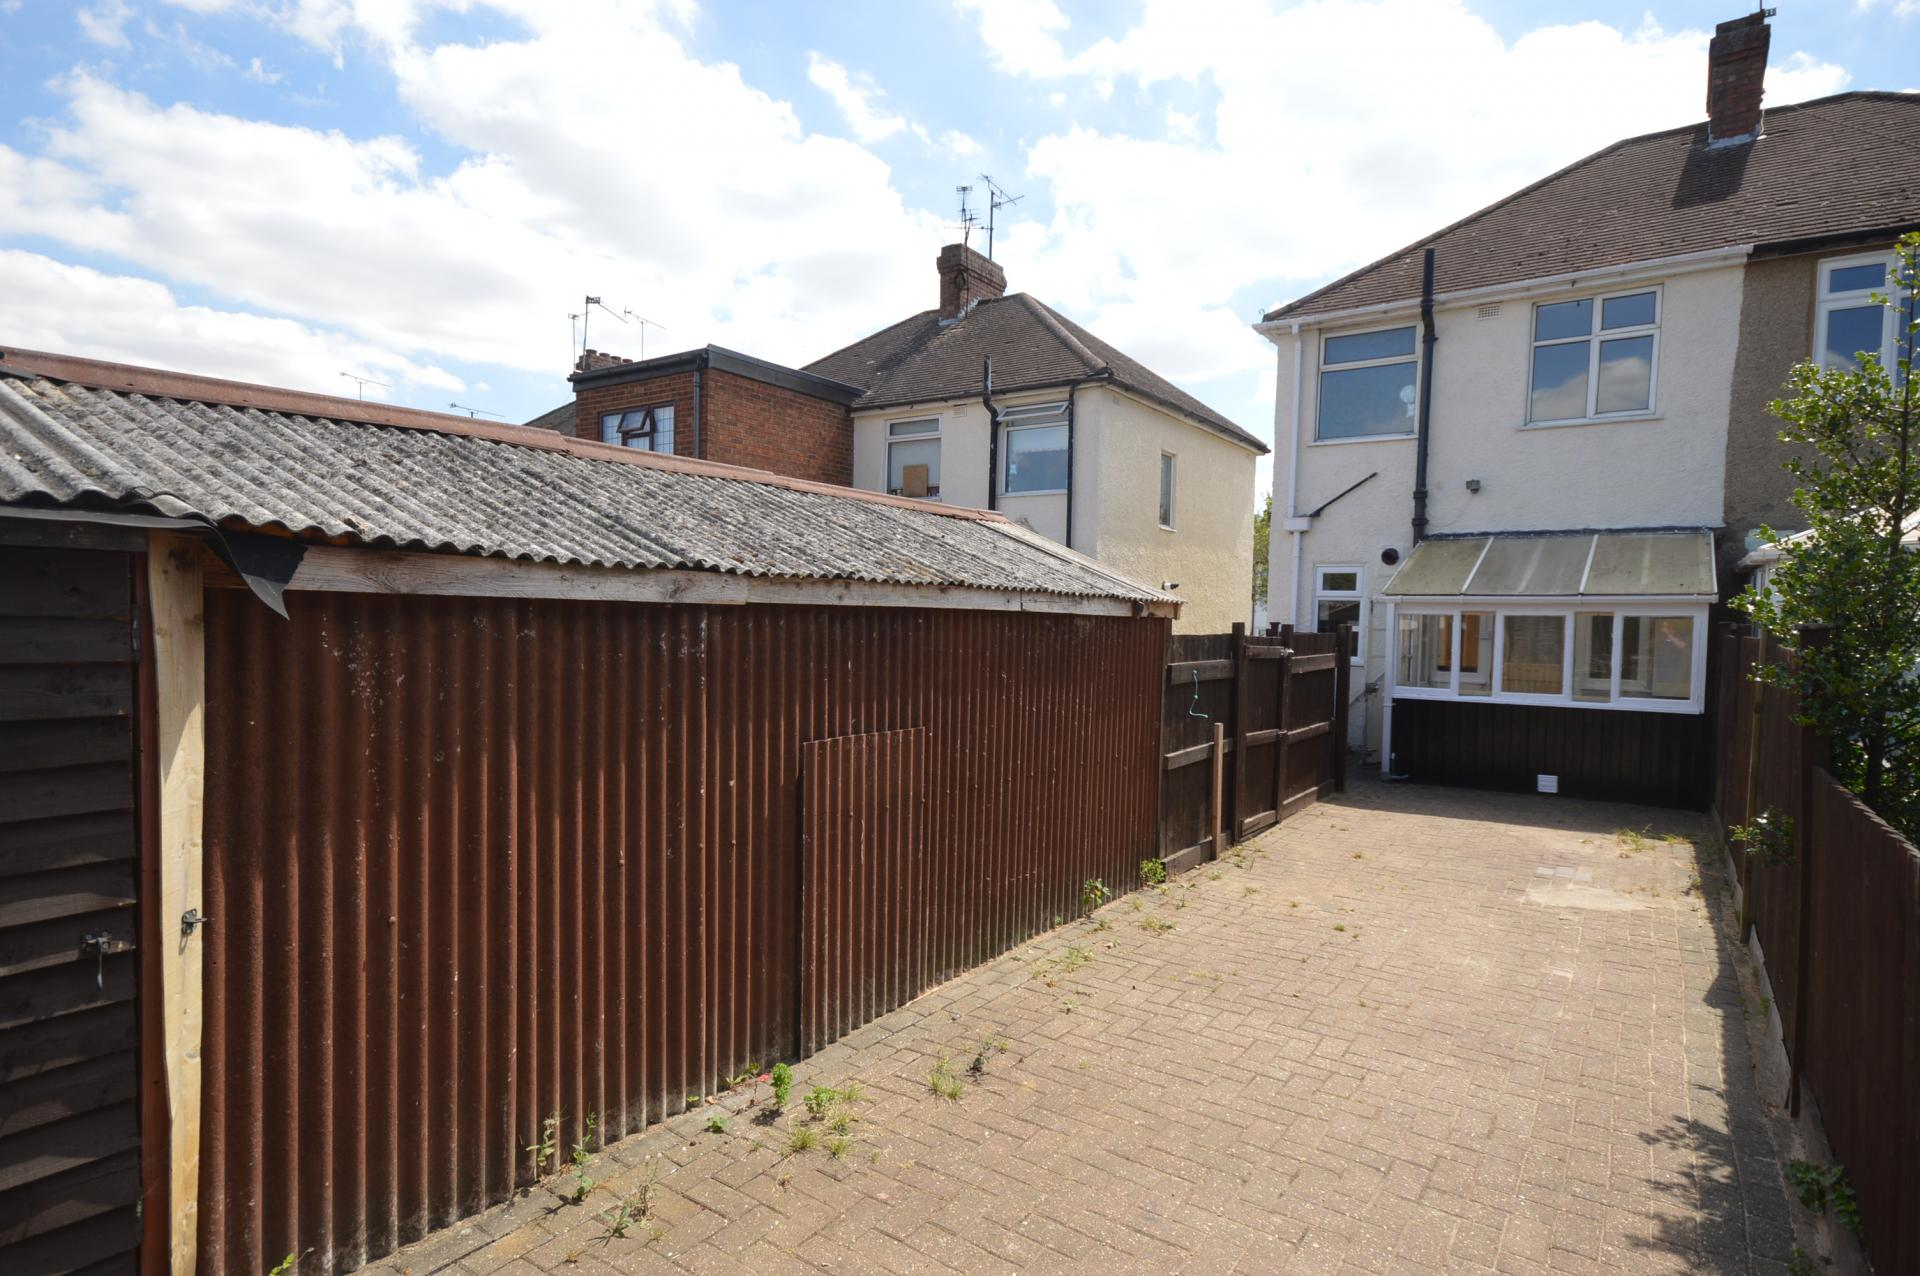 2 Bedroom Semi Detached House For Sale In Luton